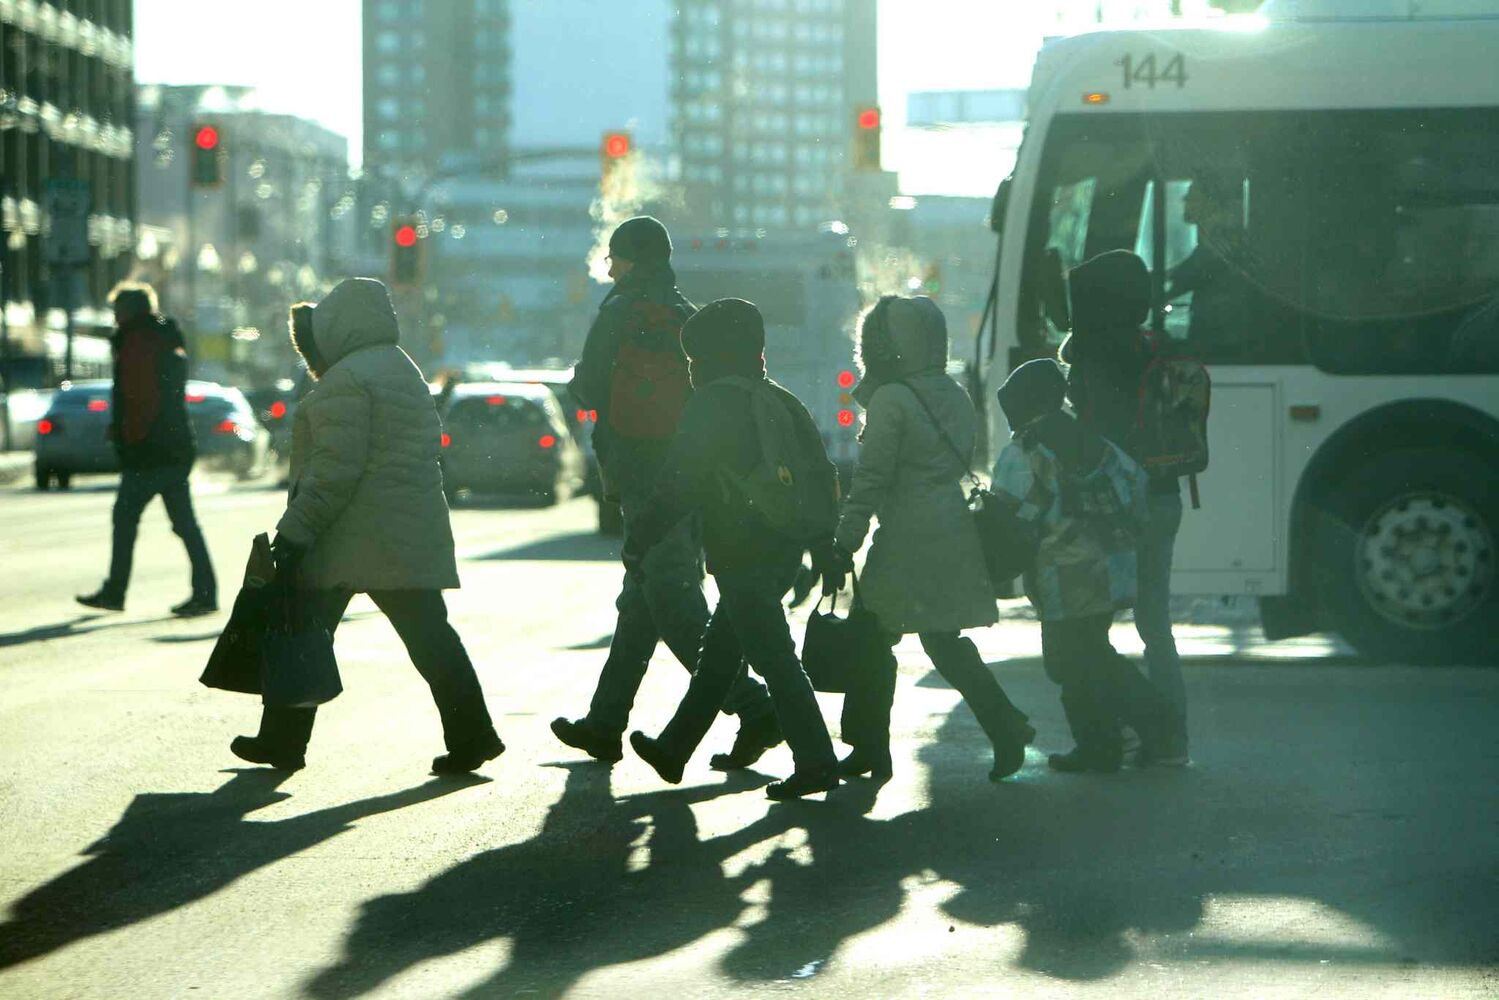 Winnipeggers hurry across Portage Avenue at Vaughan in high winds and bitterly cold temperatures Wednesday afternoon. This cold snap isn't expected to warm significantly until next week, according to Environment Canada.